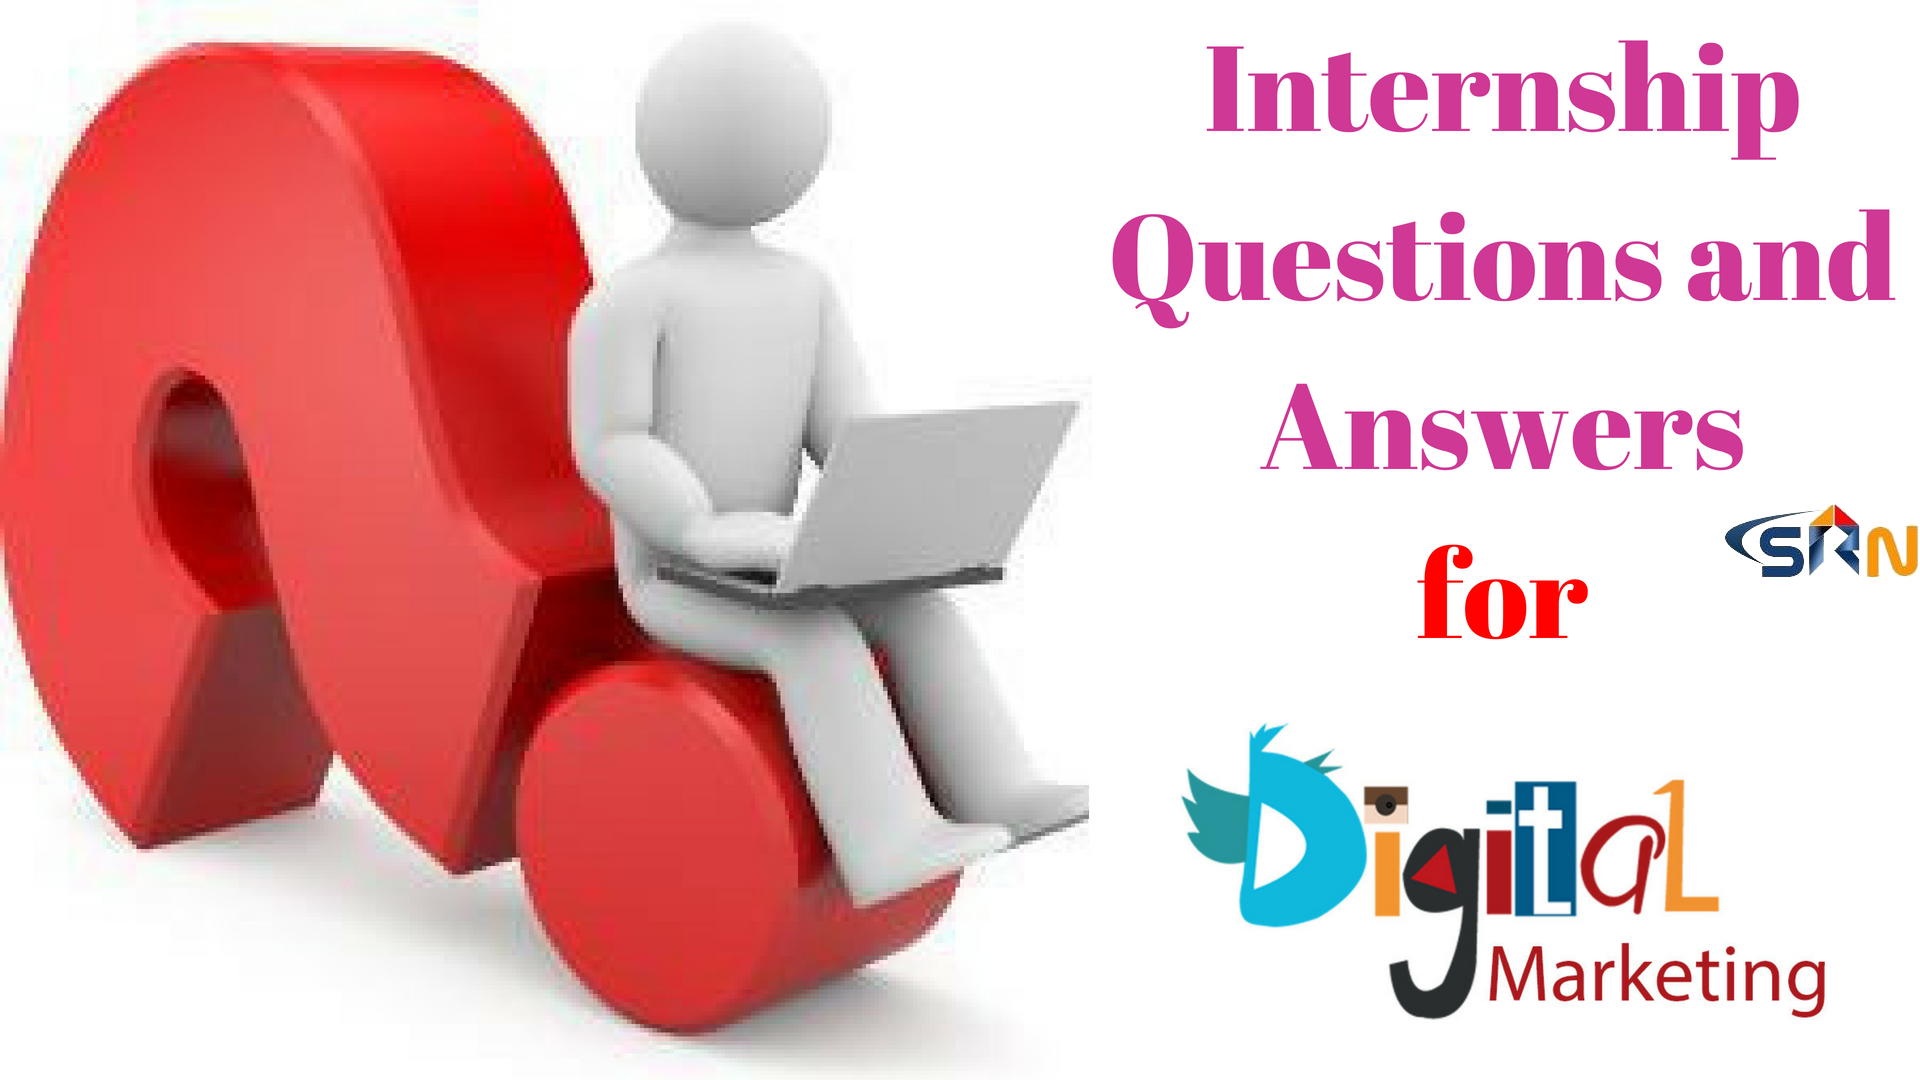 Commonly asked Digital Marketing Internship Questions and Answers